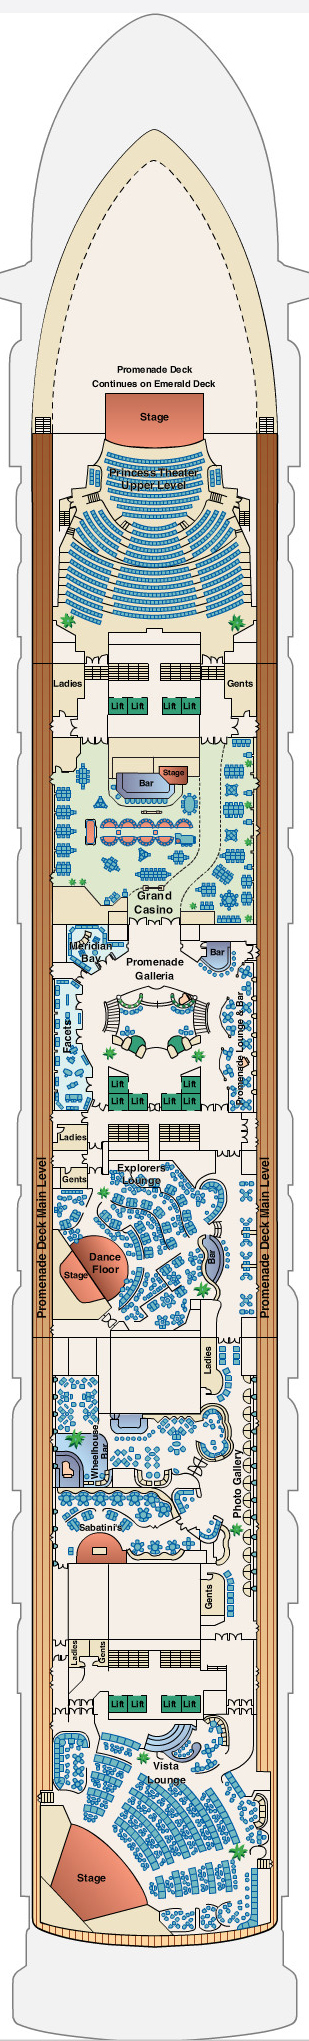 Golden Princess Promenade Deck 7 layout